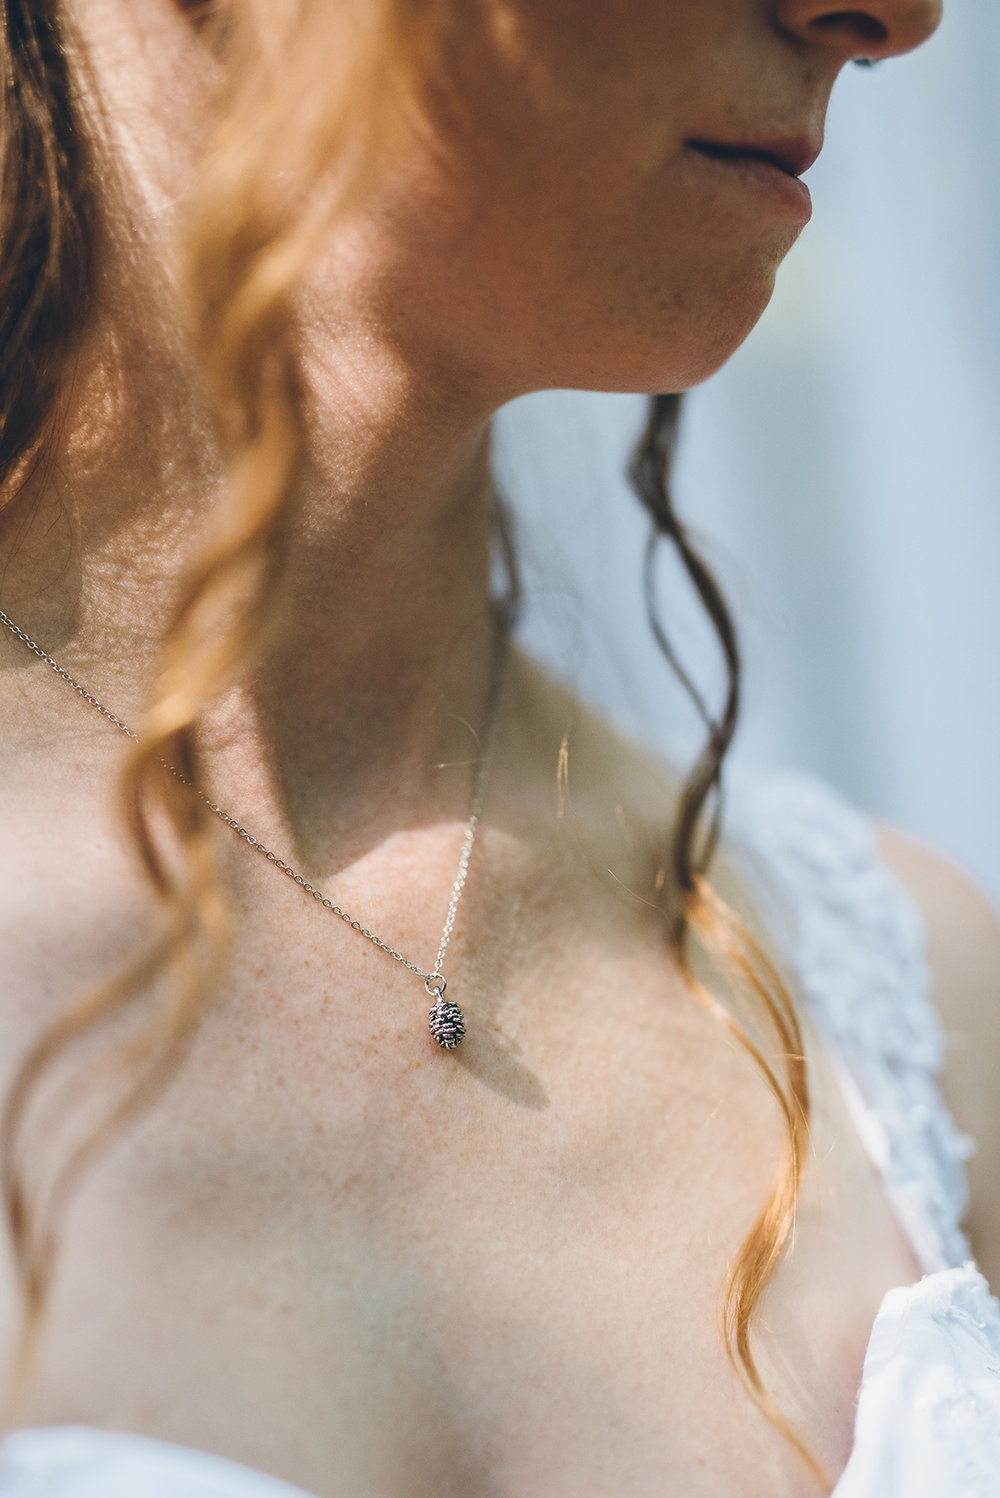 Pinecone necklace for the bride. Mountain and forest DIY wedding.